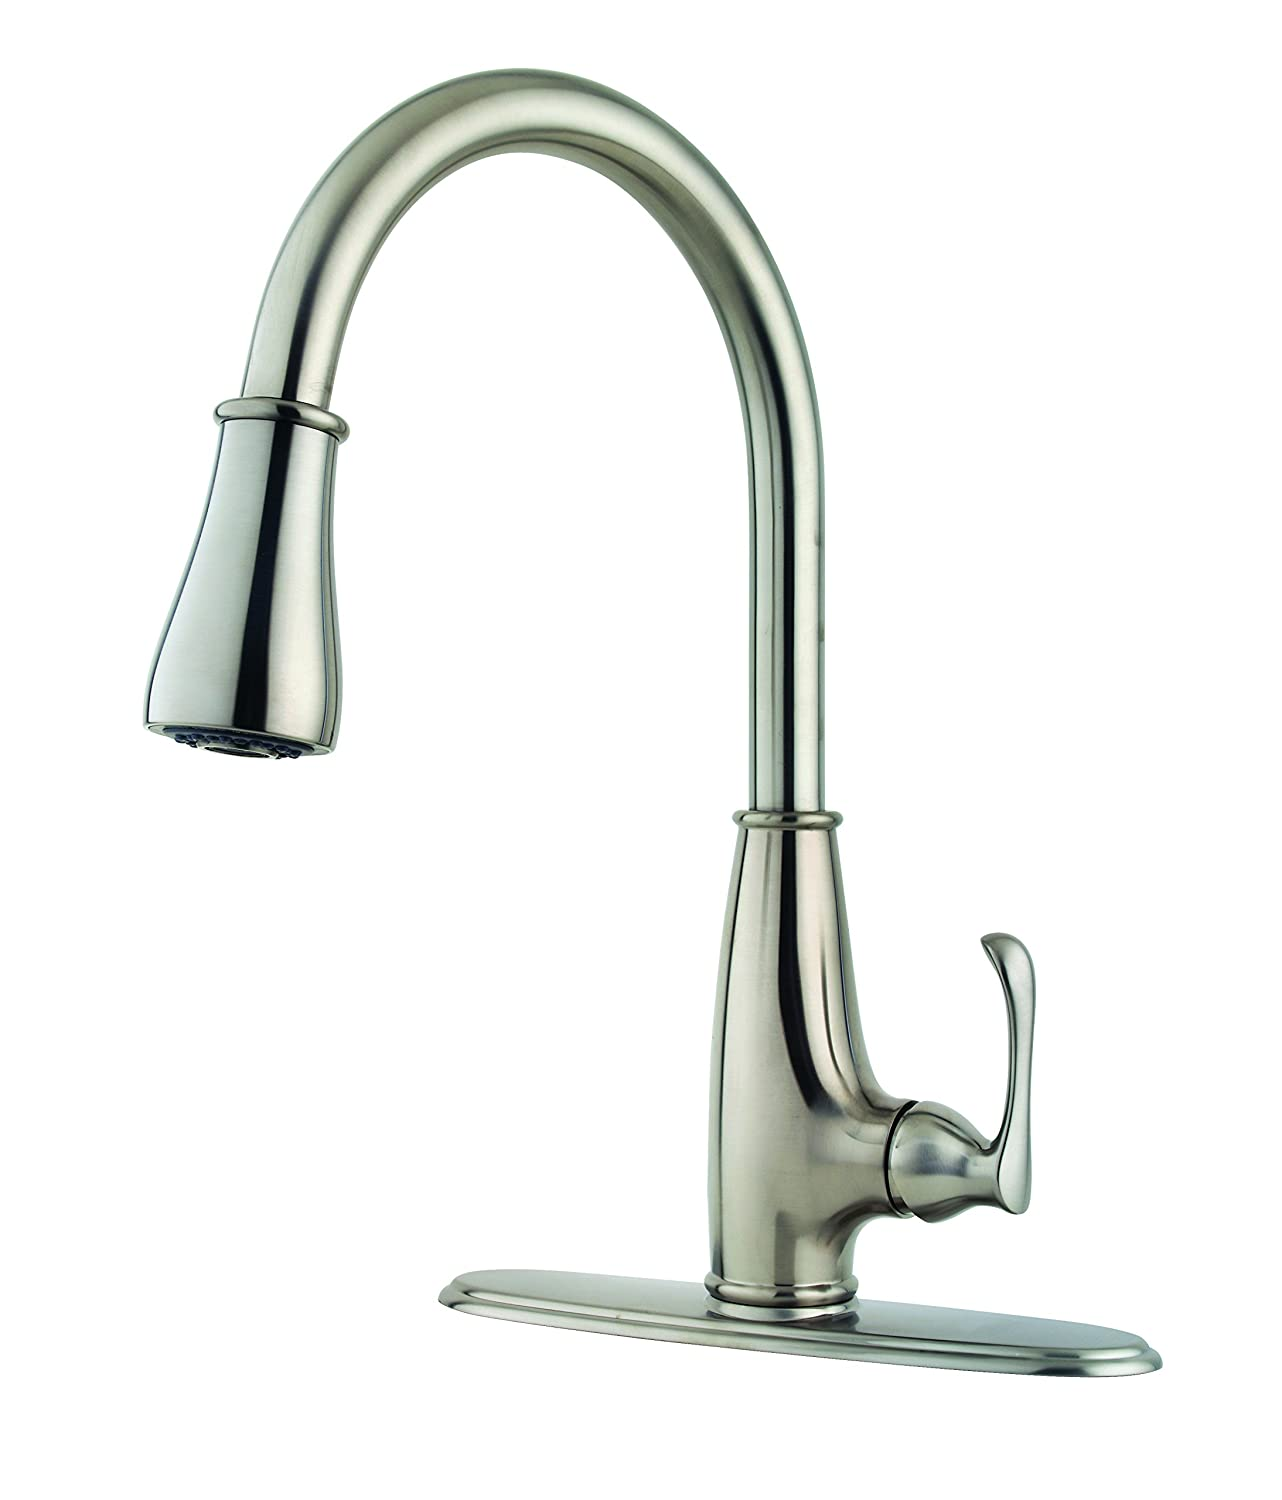 Pfister LF-529-7AYS Ainsley 1-Handle Pull-Down Kitchen Faucet with Soap  Dispenser in Stainless Steel, 1.8gpm - - Amazon.com